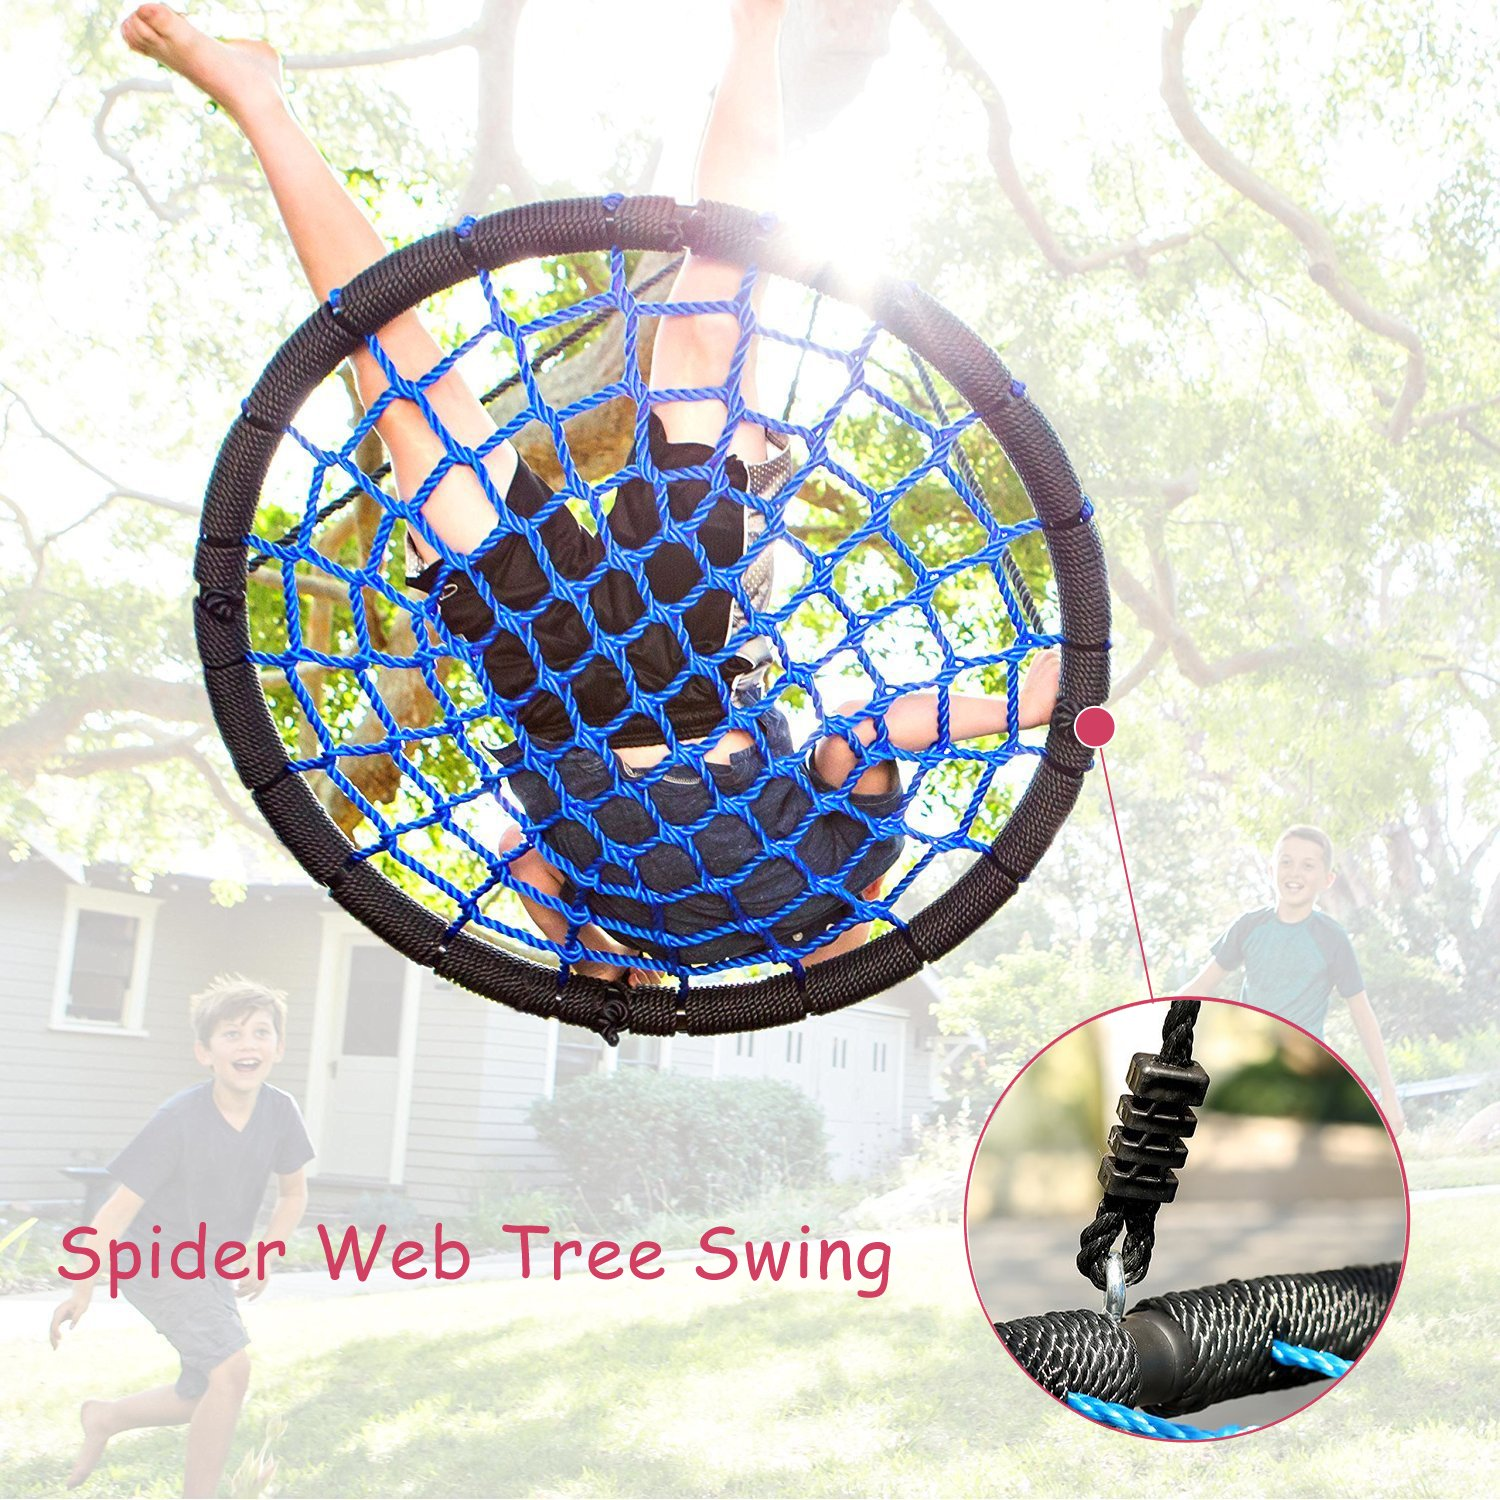 Elevens Platform Swing 30/'/'x 40/'/' Heavy Duty Playground Tree Swing with Hanging Kit and Straps for Indoor Outdoor 440 lbs Capacity SZSJZ